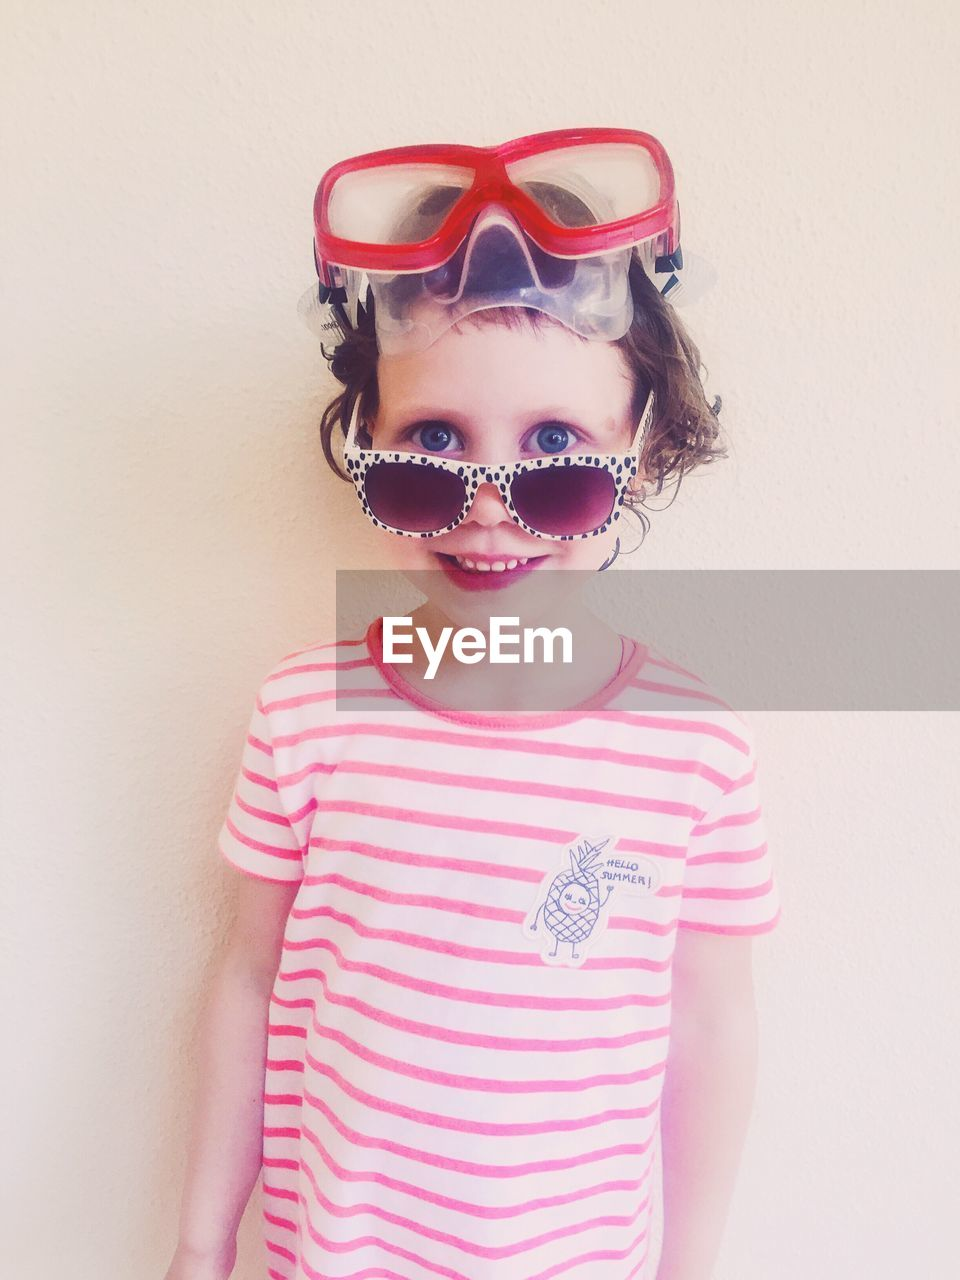 Portrait of cute girl wearing sunglasses and swimming goggles against wall